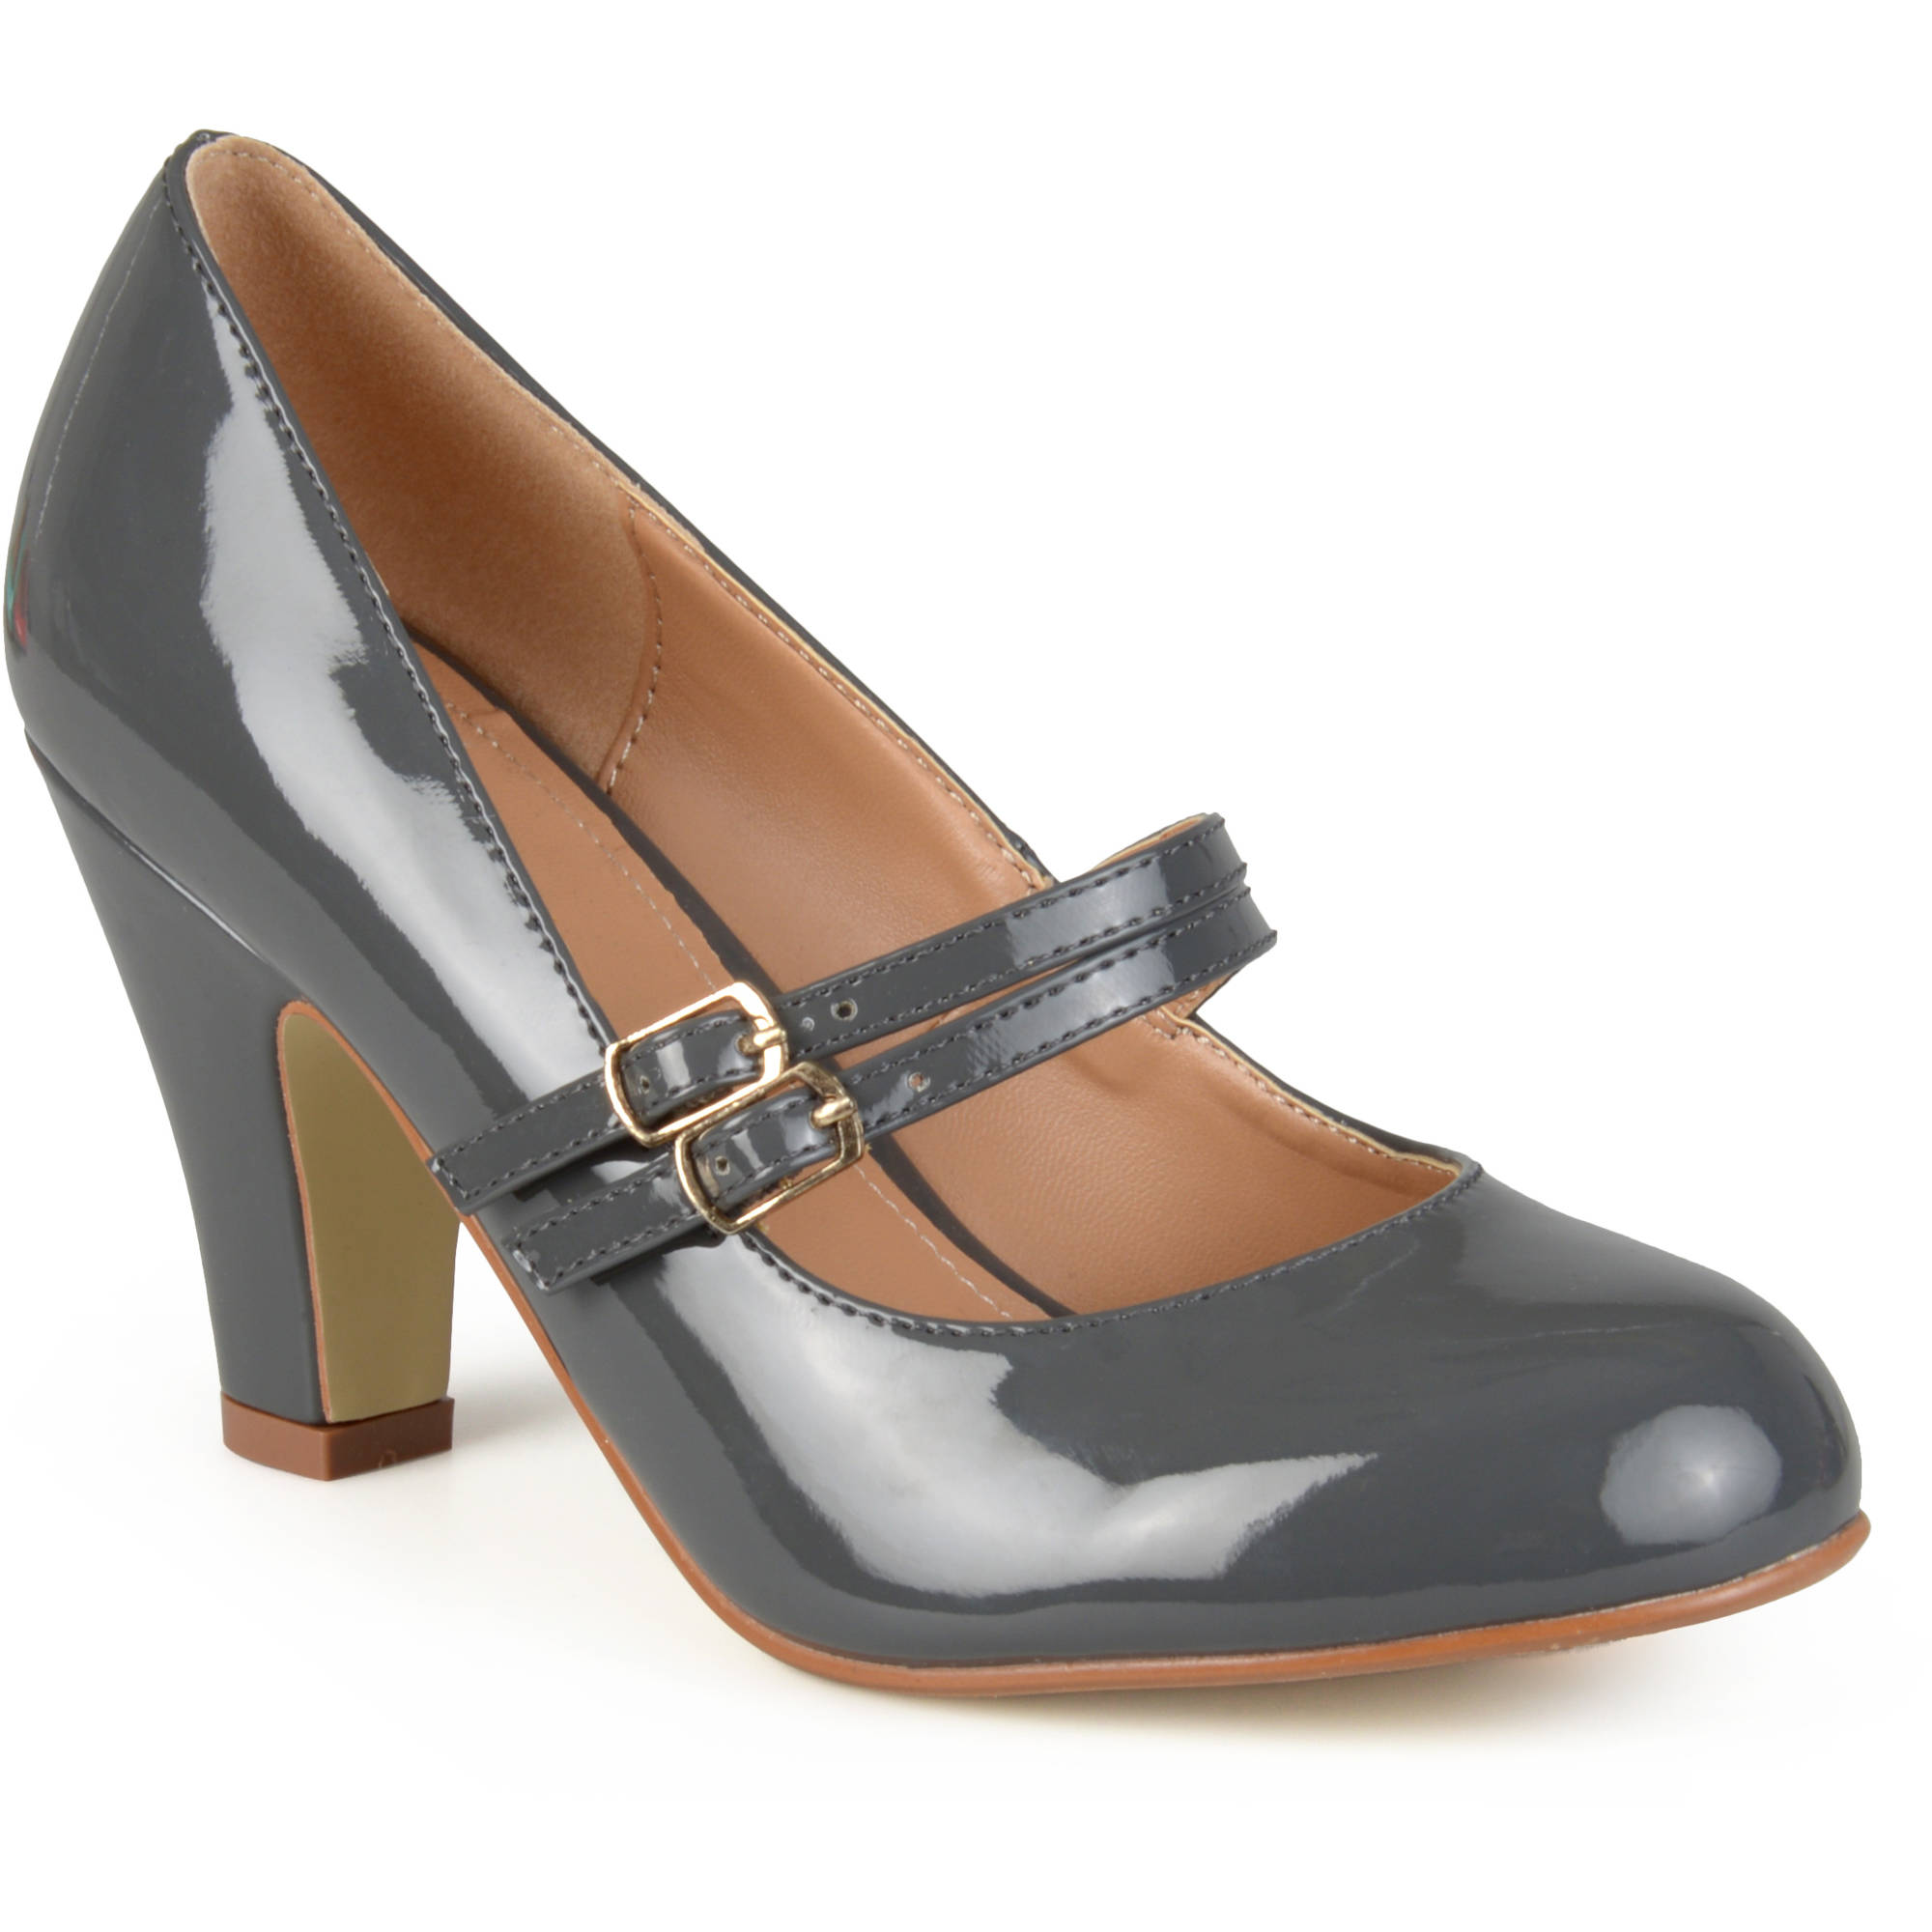 Brinley Co Womens Mary Jane Patent Leather Pumps